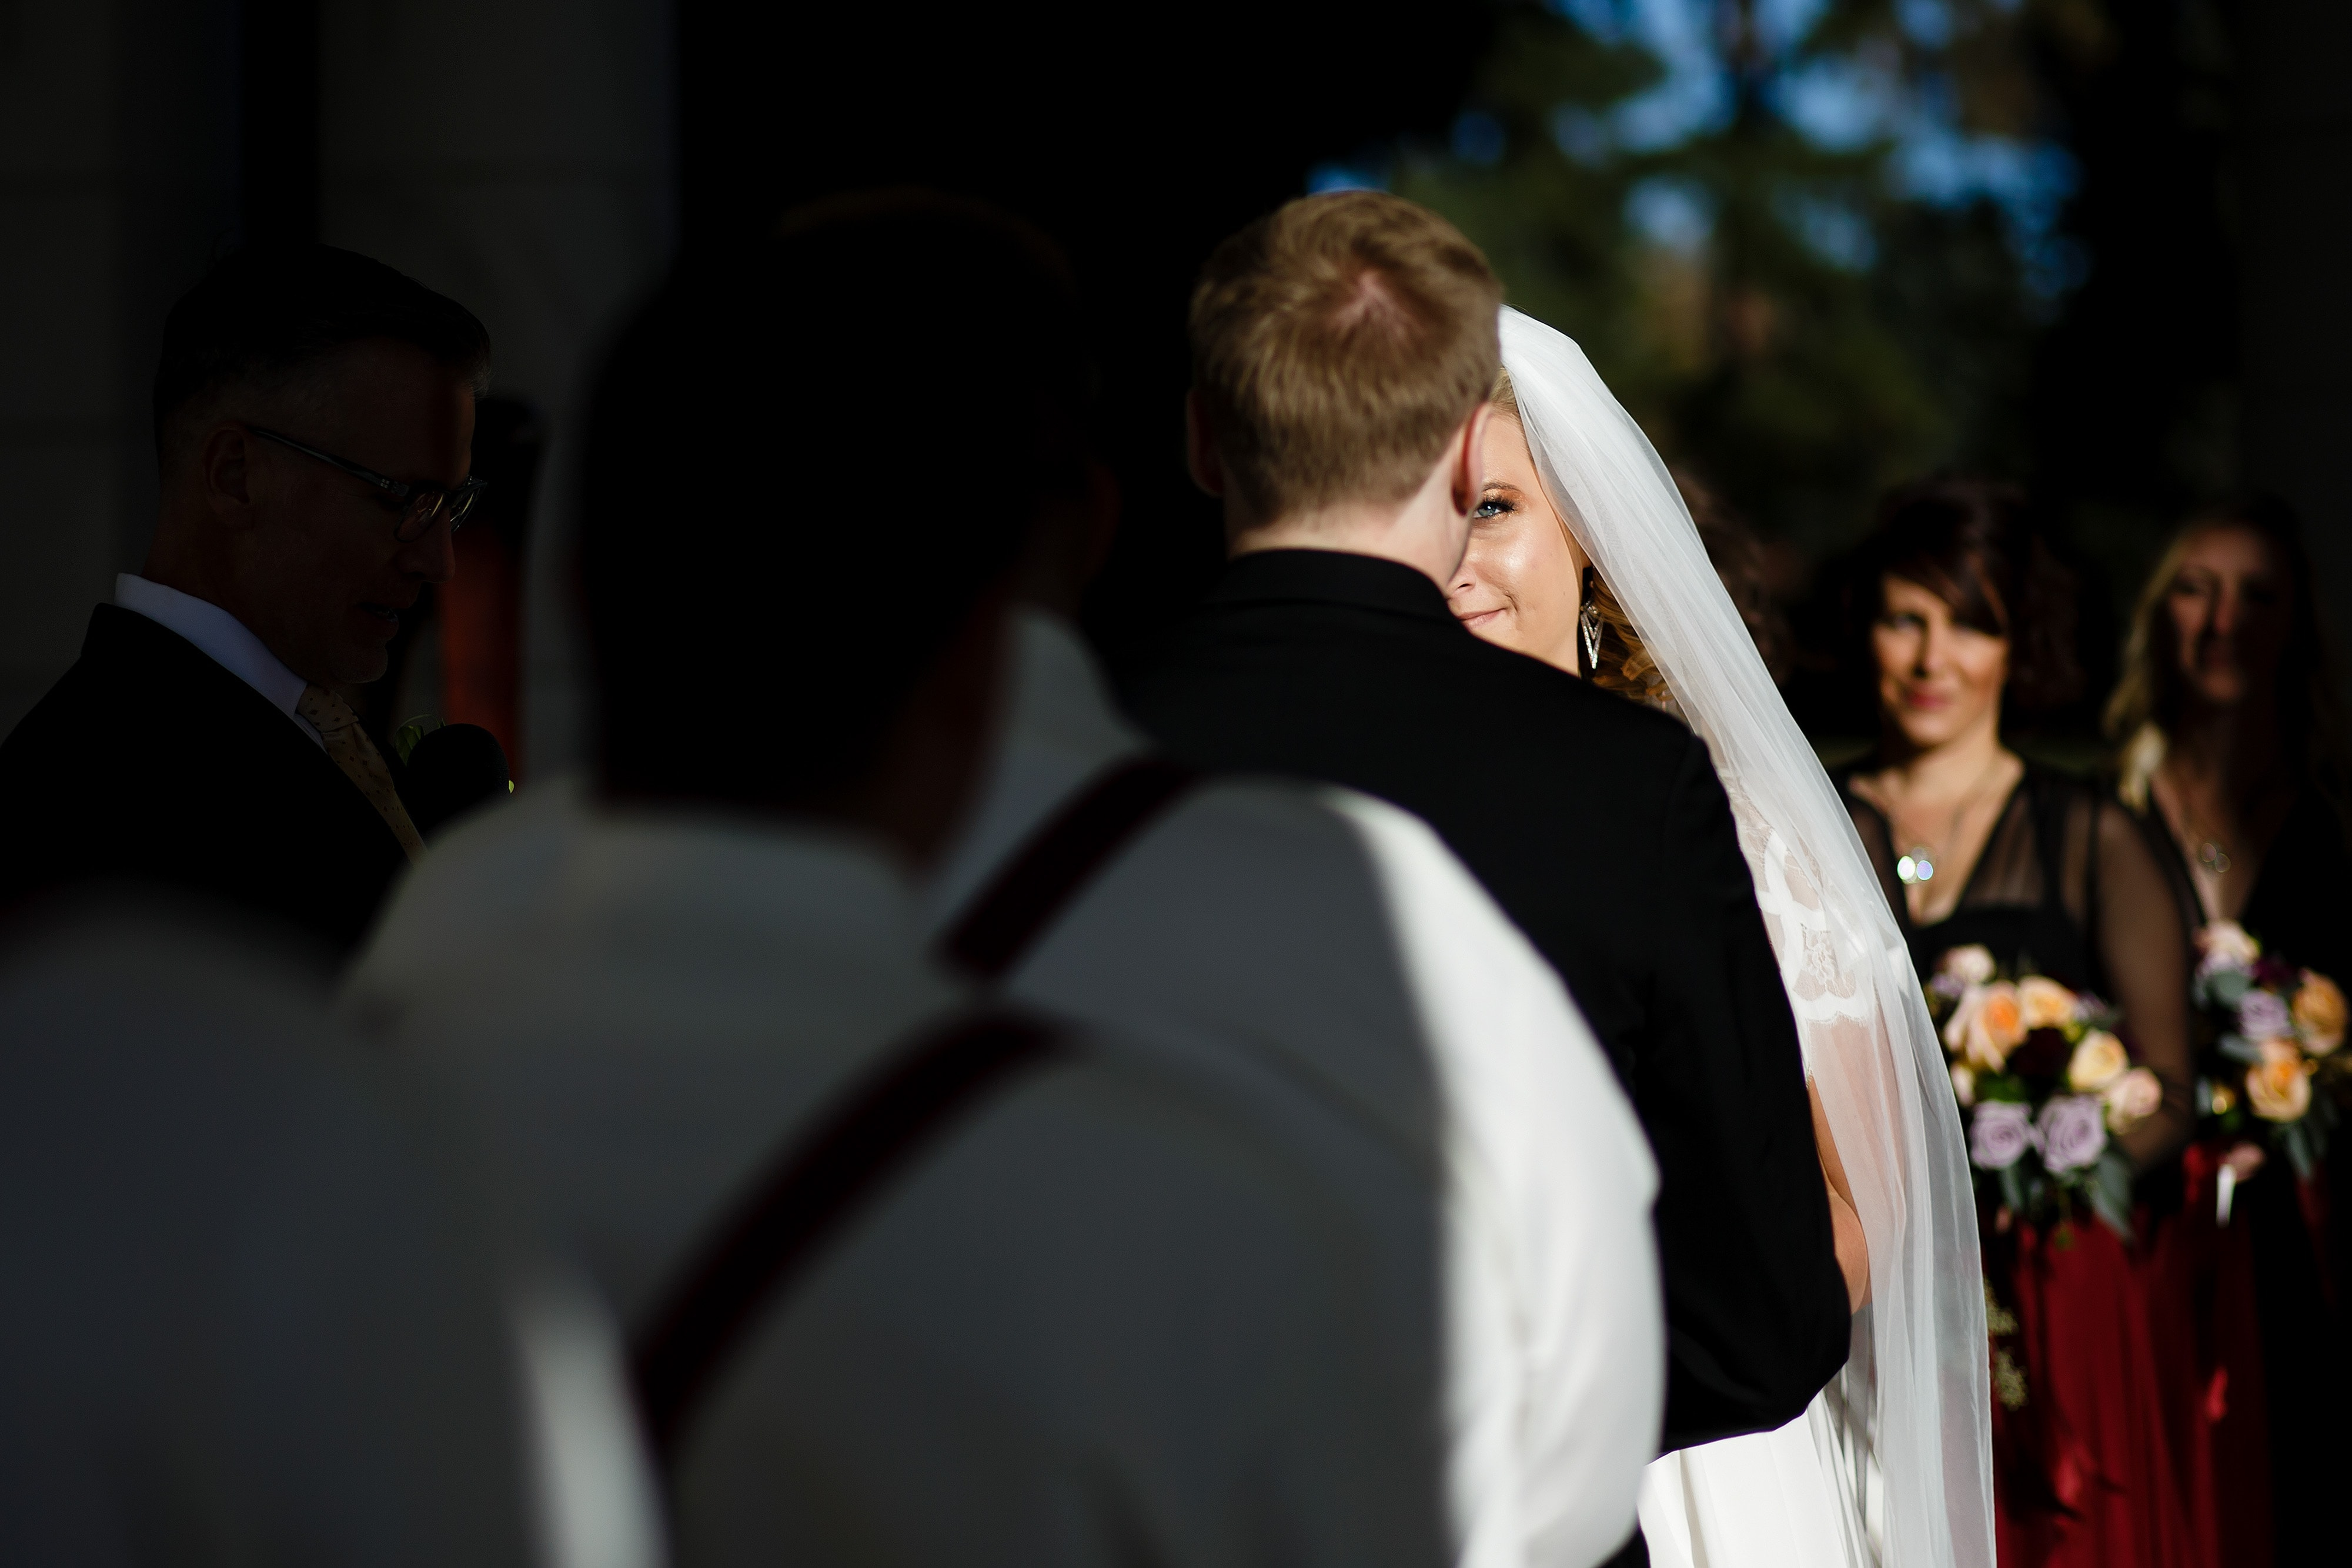 A sliver of light illuminates the bride during the wedding at Cheesman Park in Denver